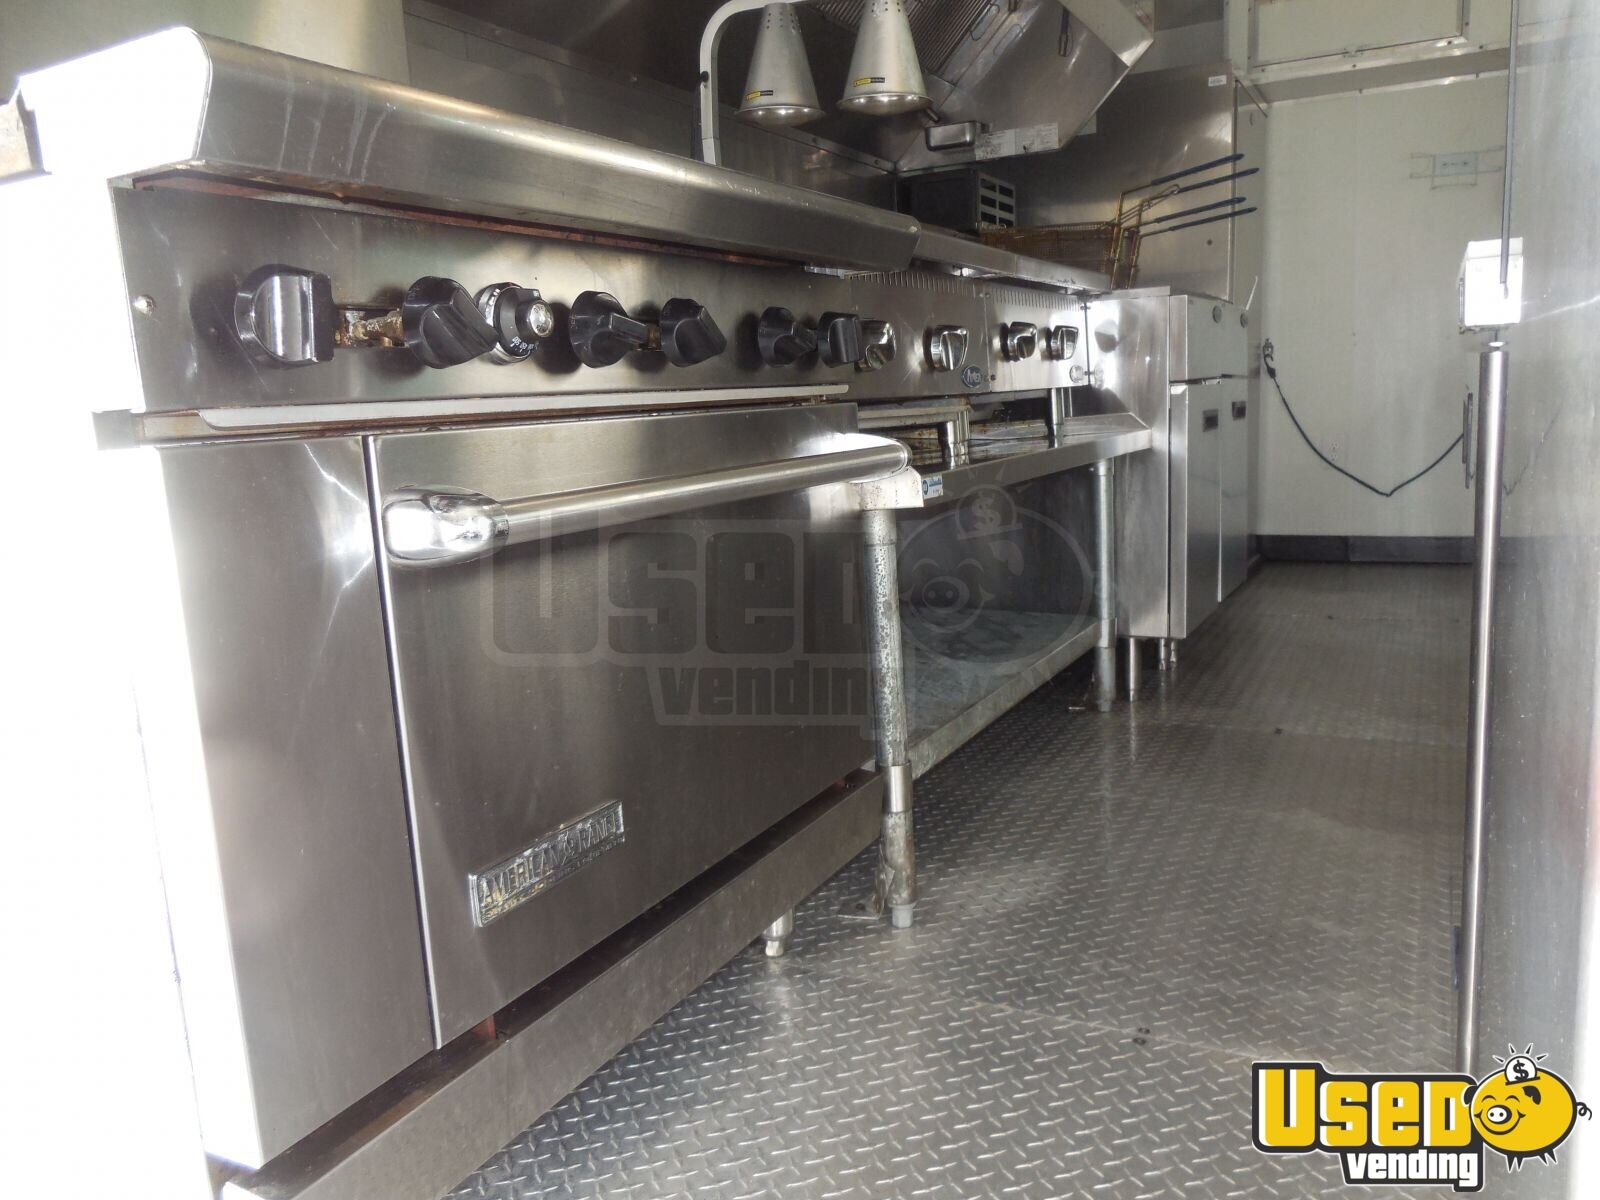 2017 Custome Kitchen Food Trailer Reach-in Upright Cooler Florida for Sale - 13